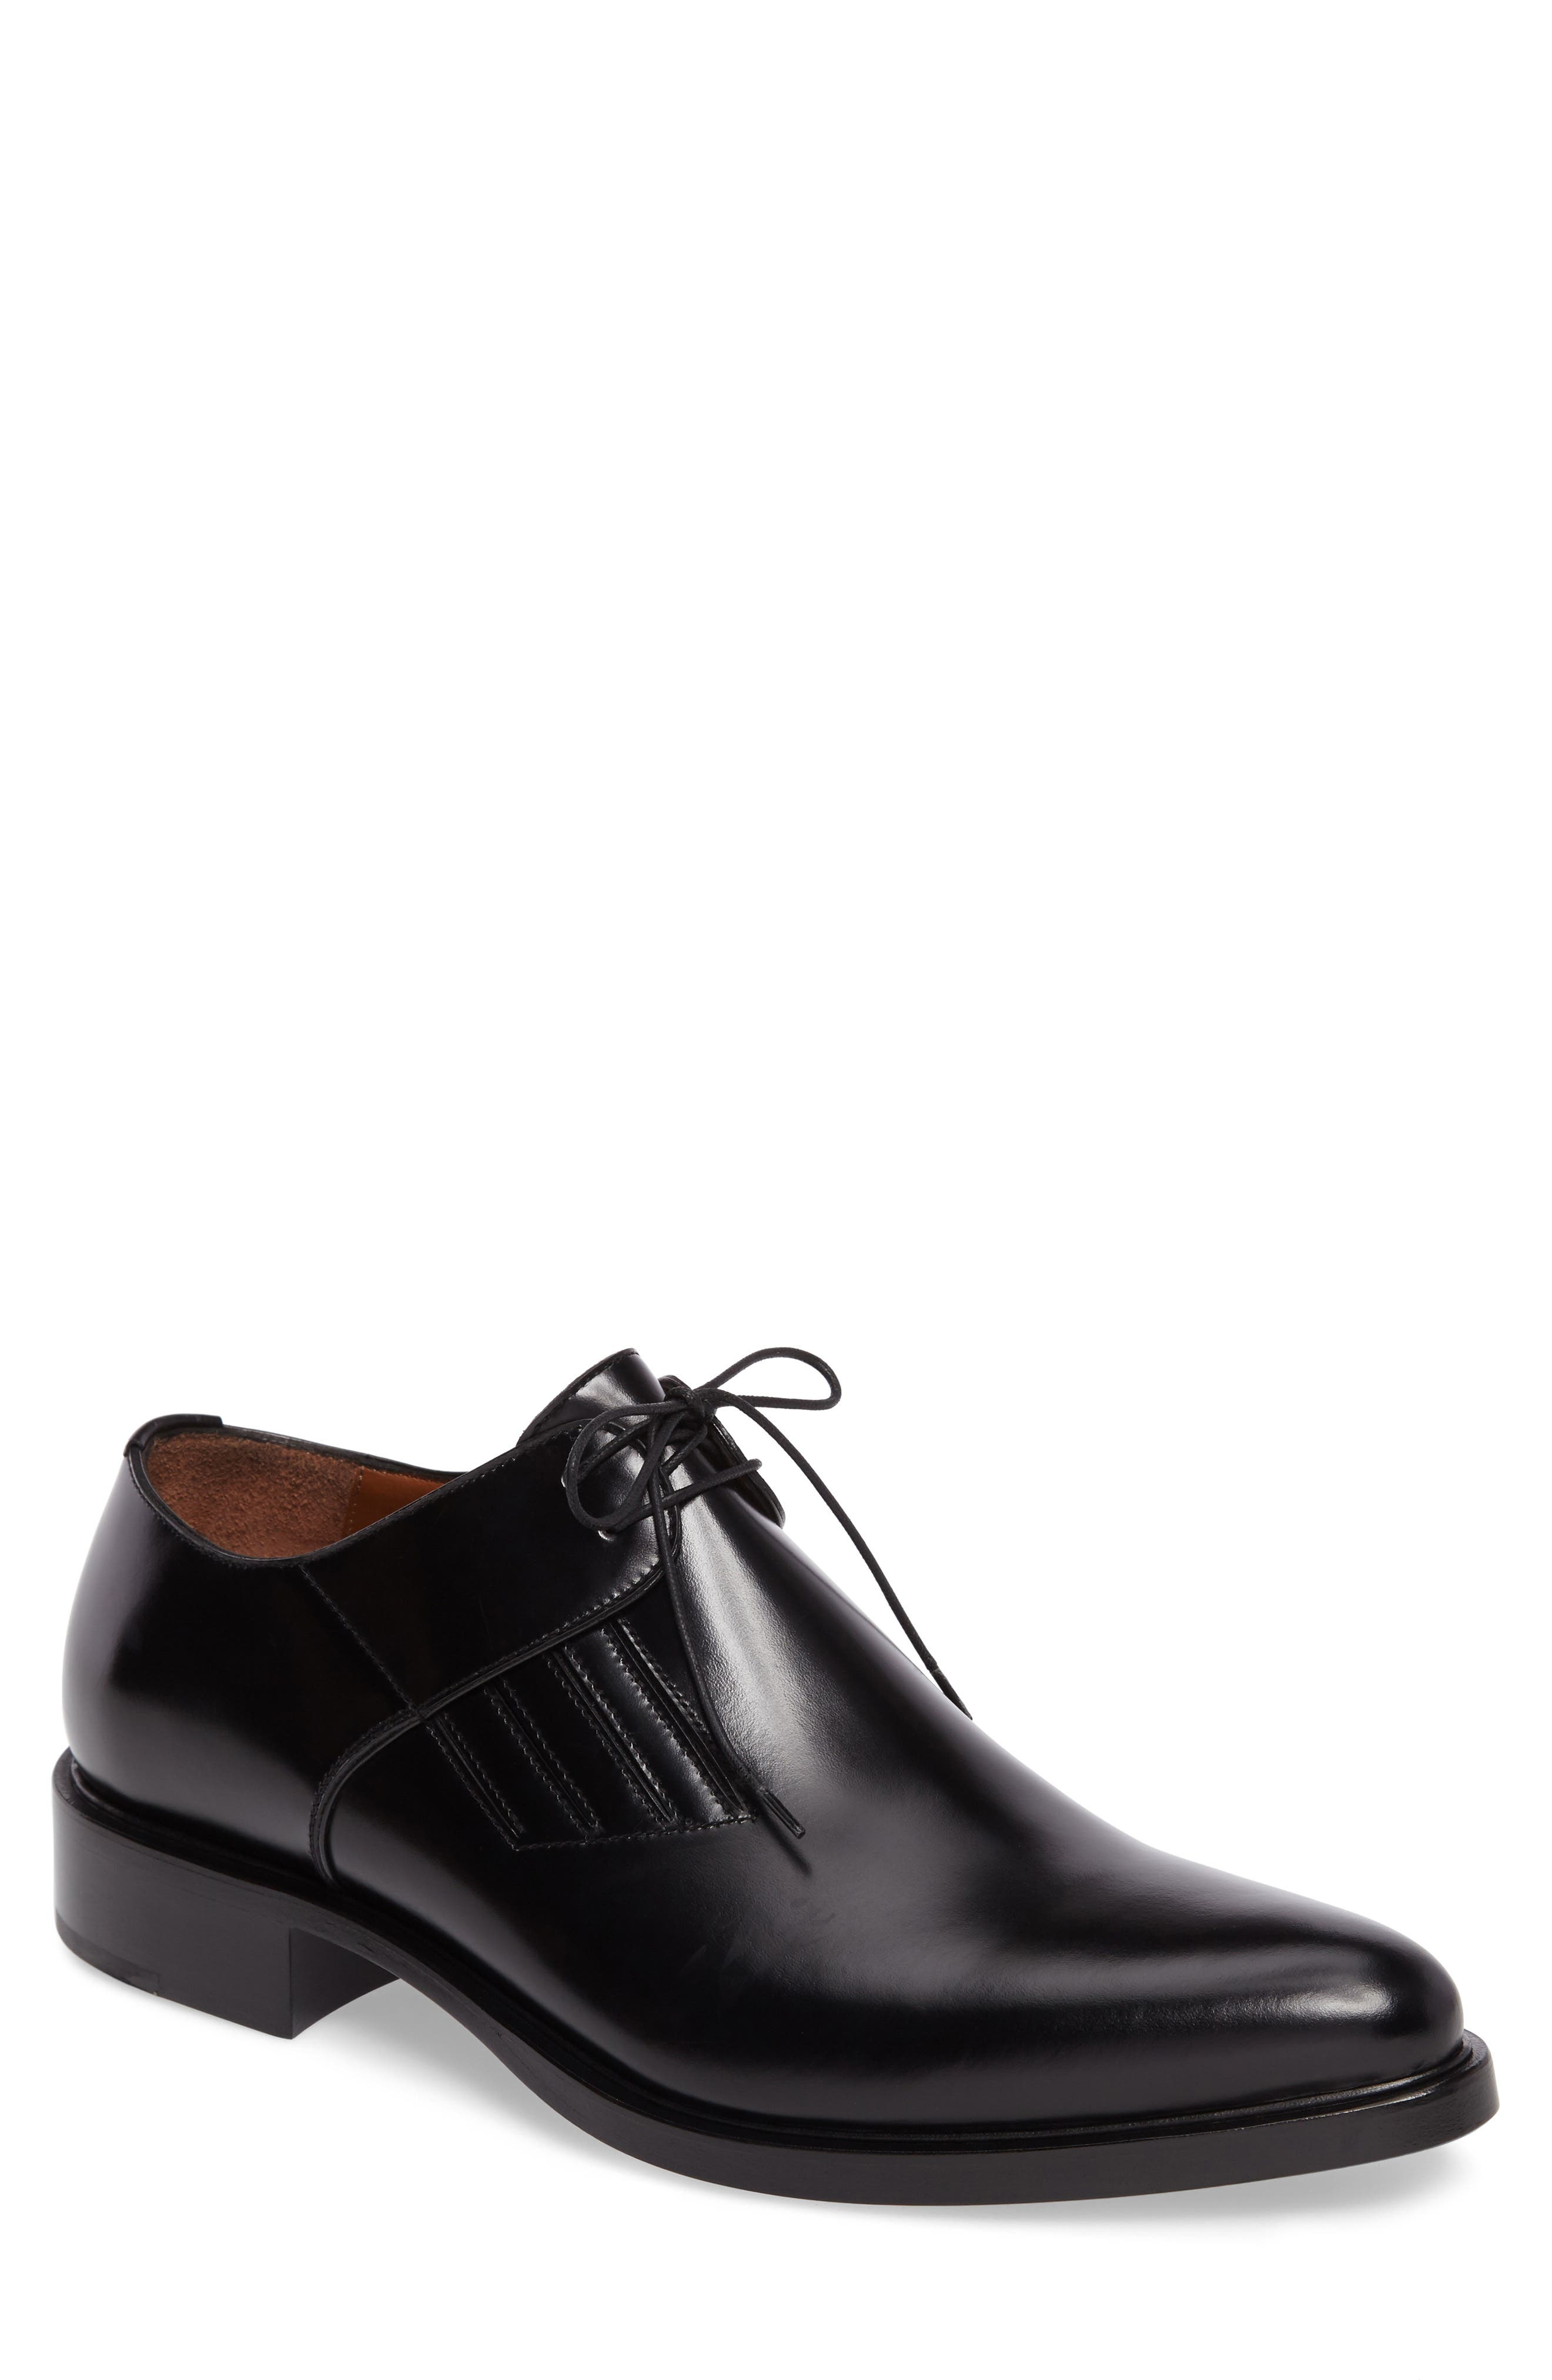 GIVENCHY Plain Toe Derby